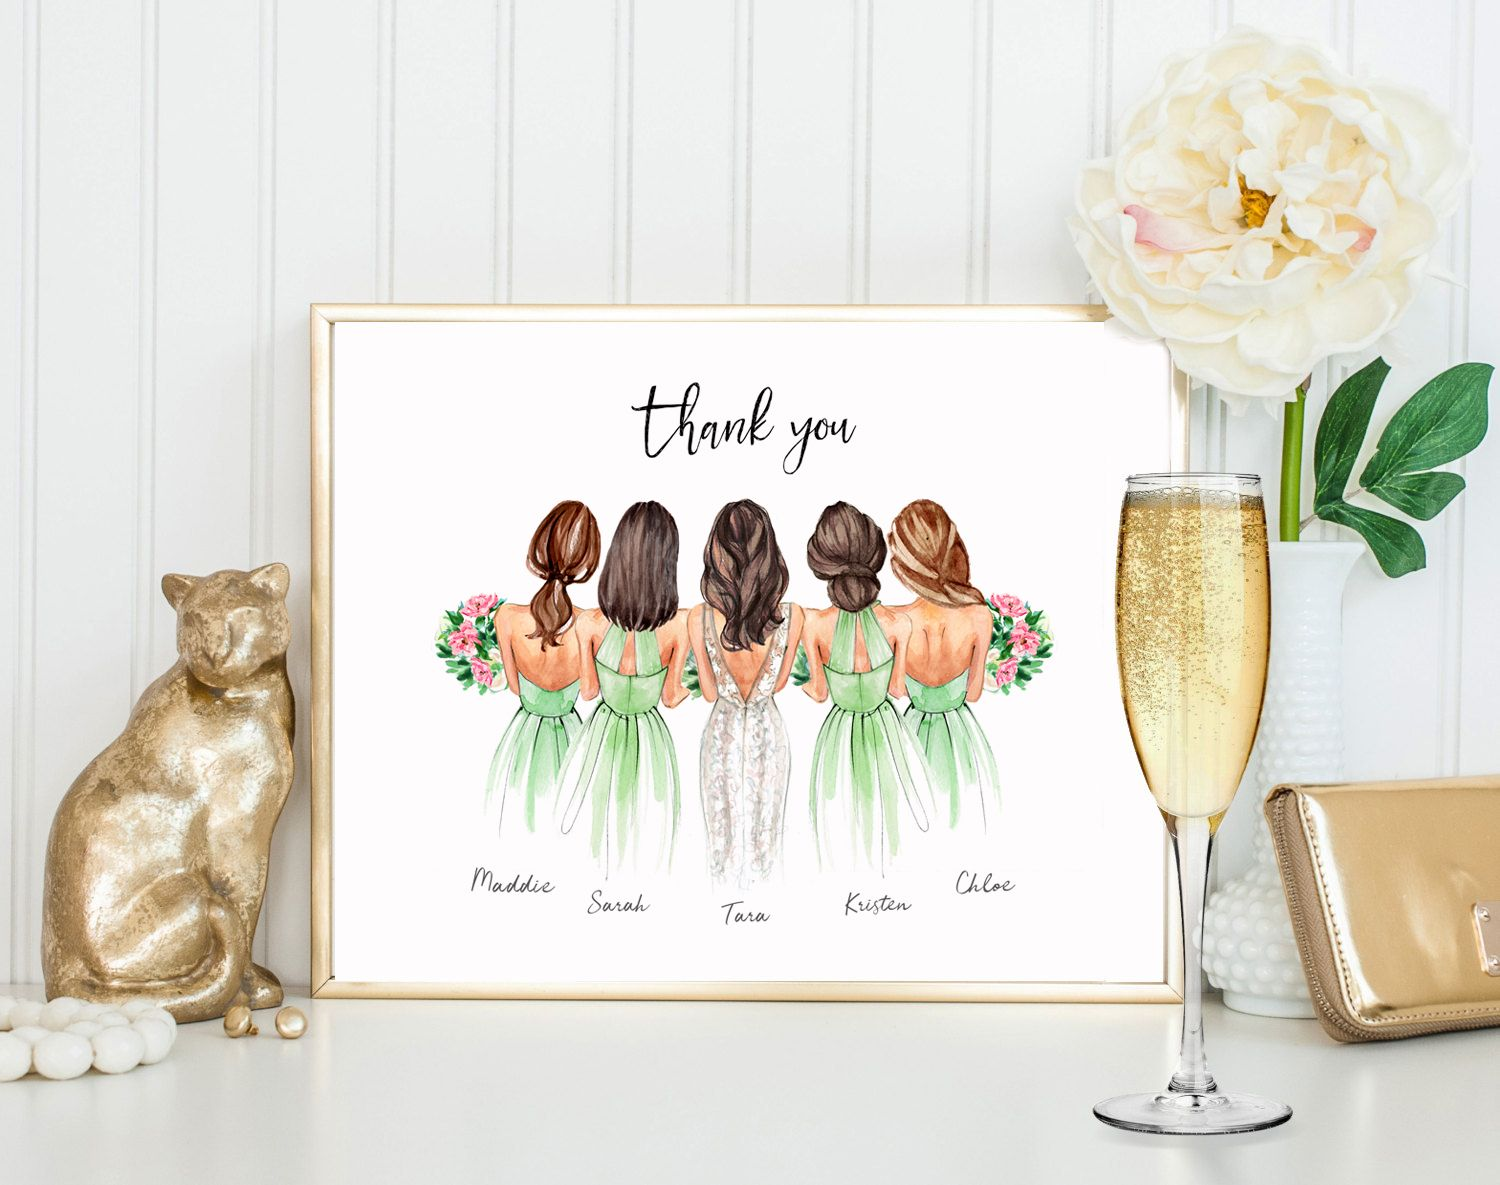 Customized Bridesmaids Gift Gifts For Bridesmaids Bridesmaid Gift Ideas Bride Gifts Gifts For Bride Wedding Favour Bridesmaids Print In 2020 Bridesmaids Personalized Bride Gifts Customized Bridesmaid Gifts